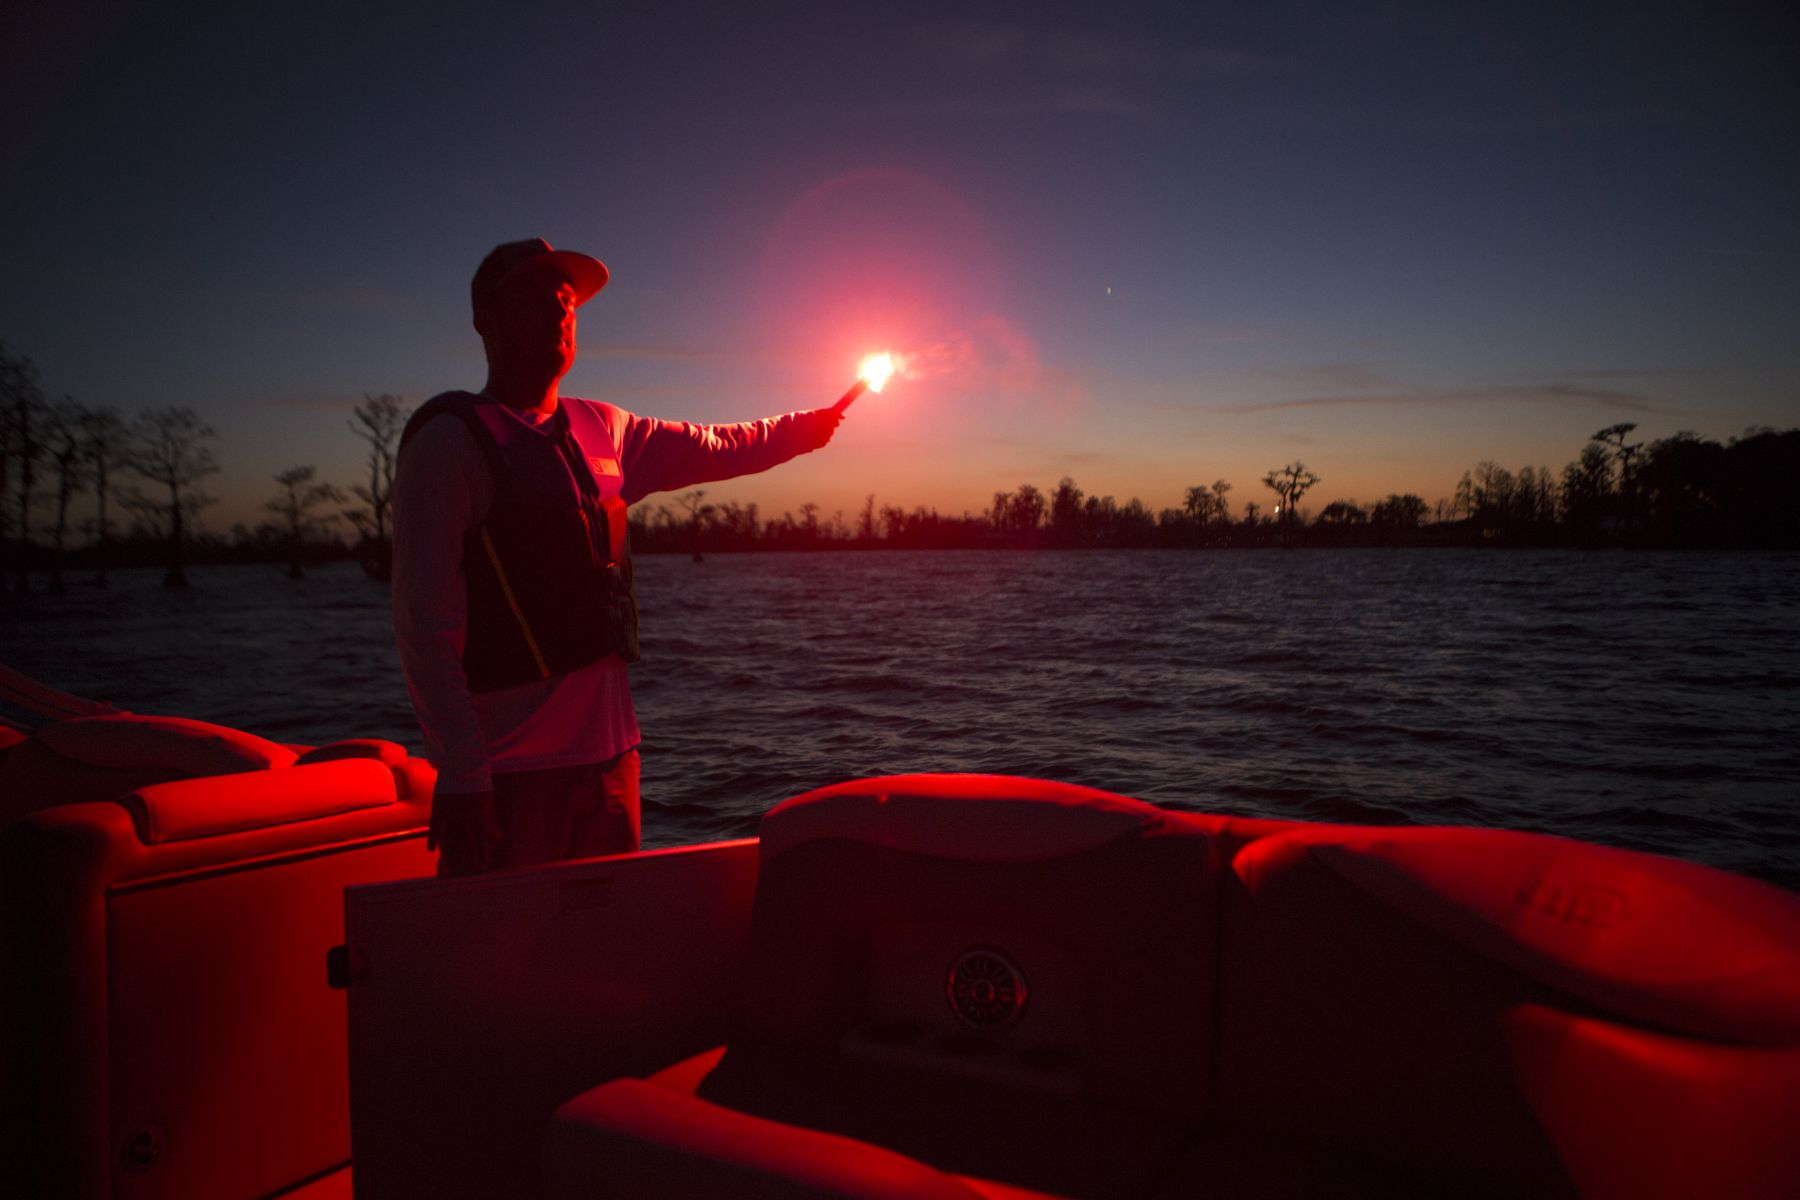 Using a handheld flare at dusk aboard a boat 16-21 feet.